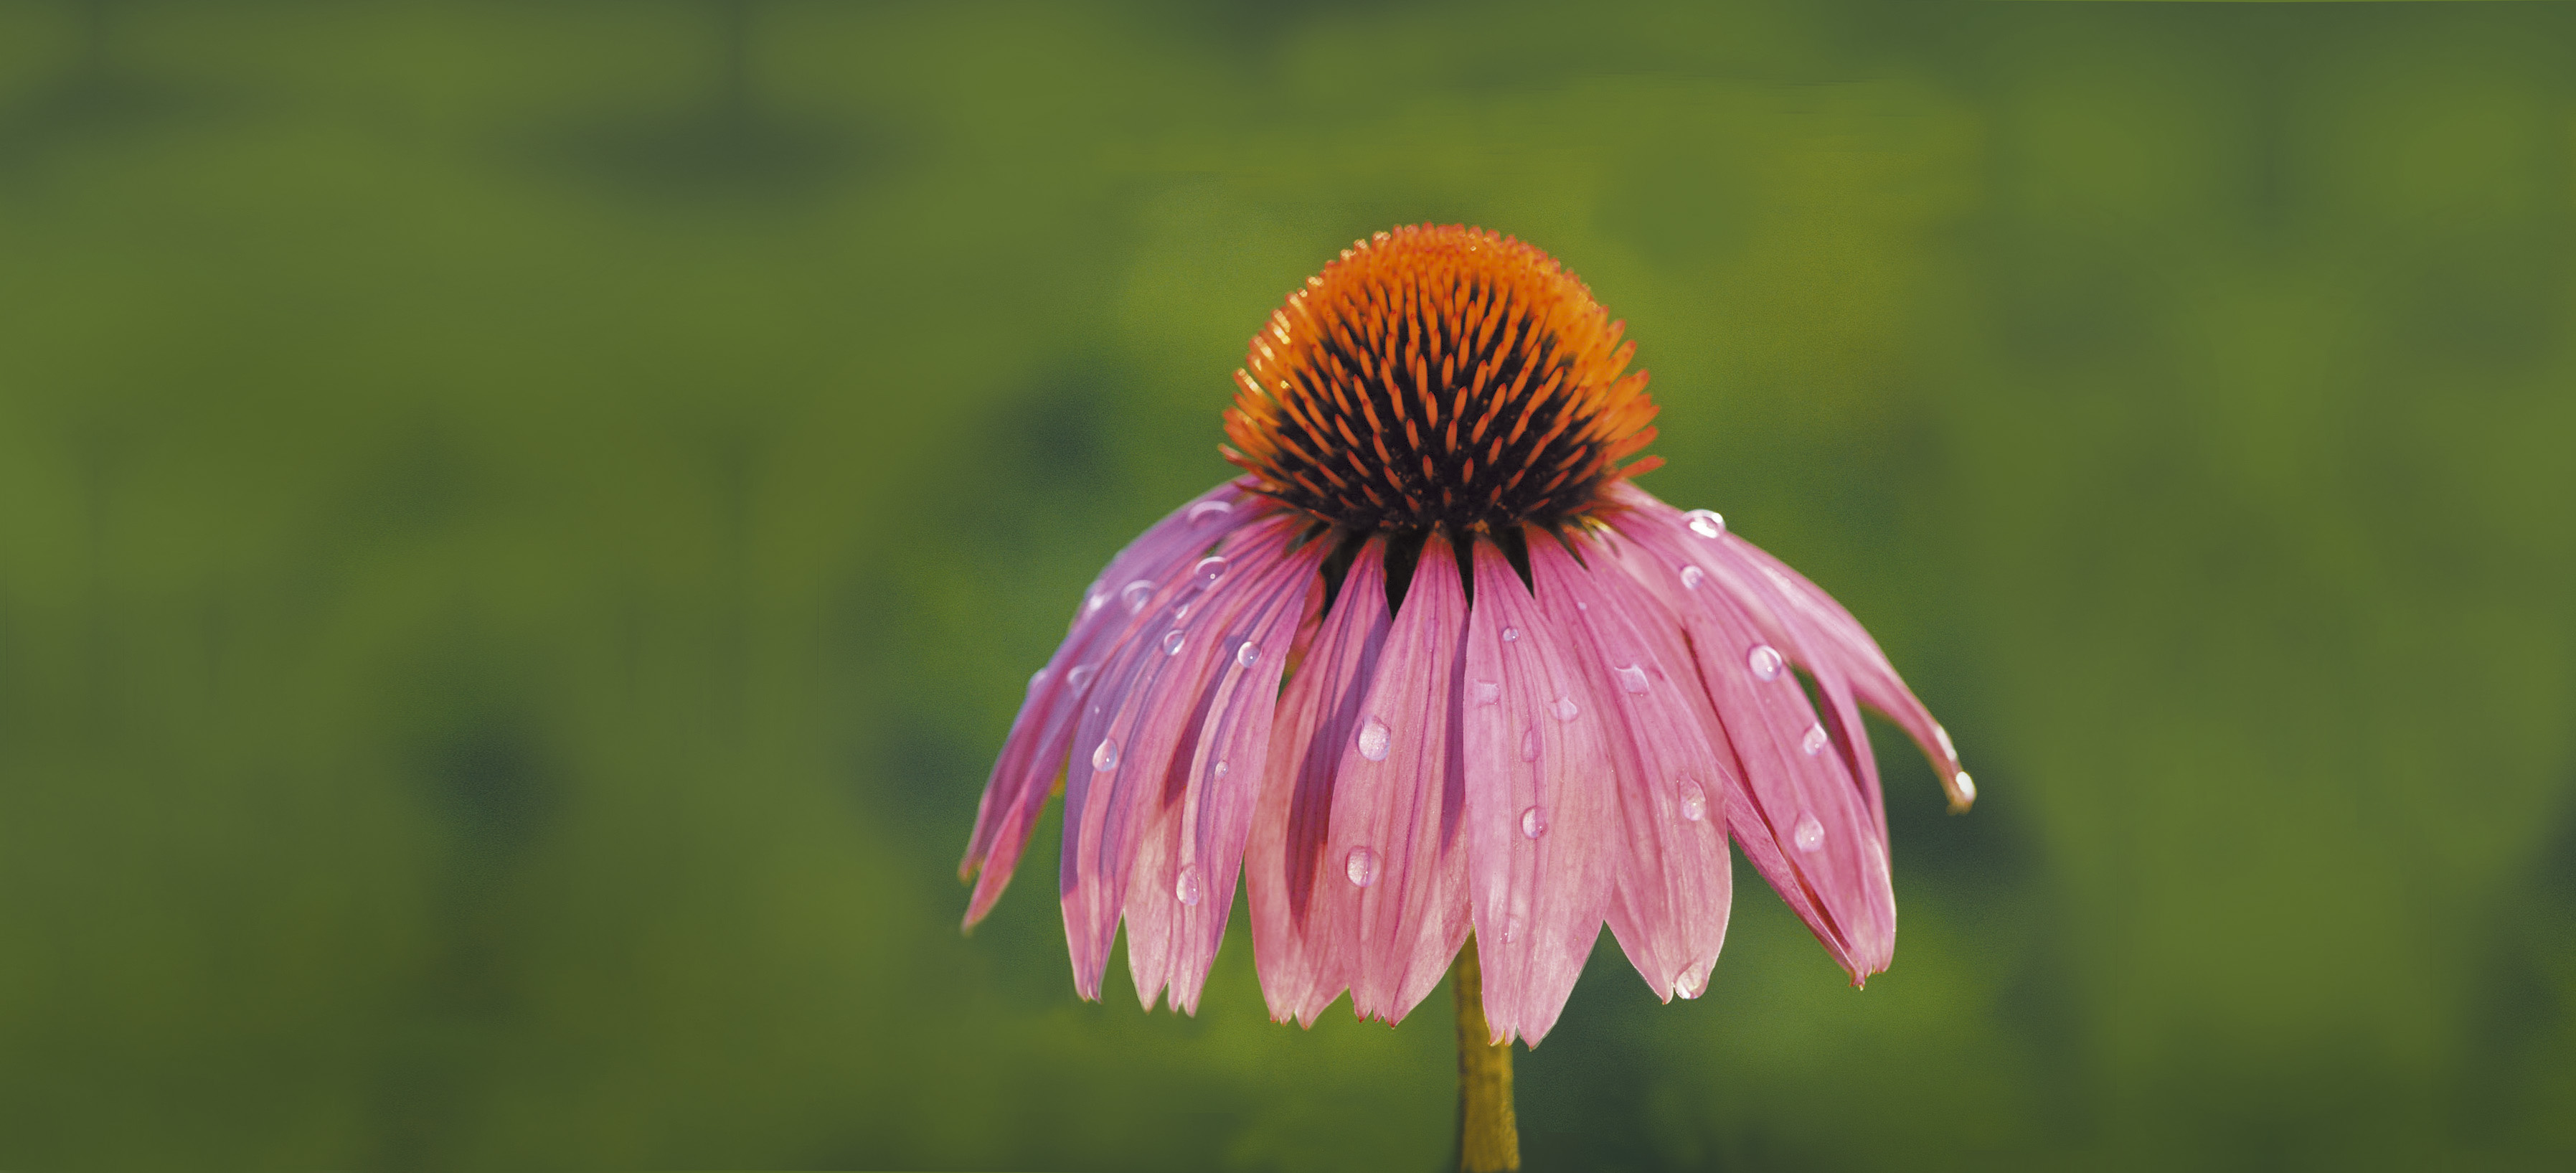 How To Choose Your Echinacea For This Winter